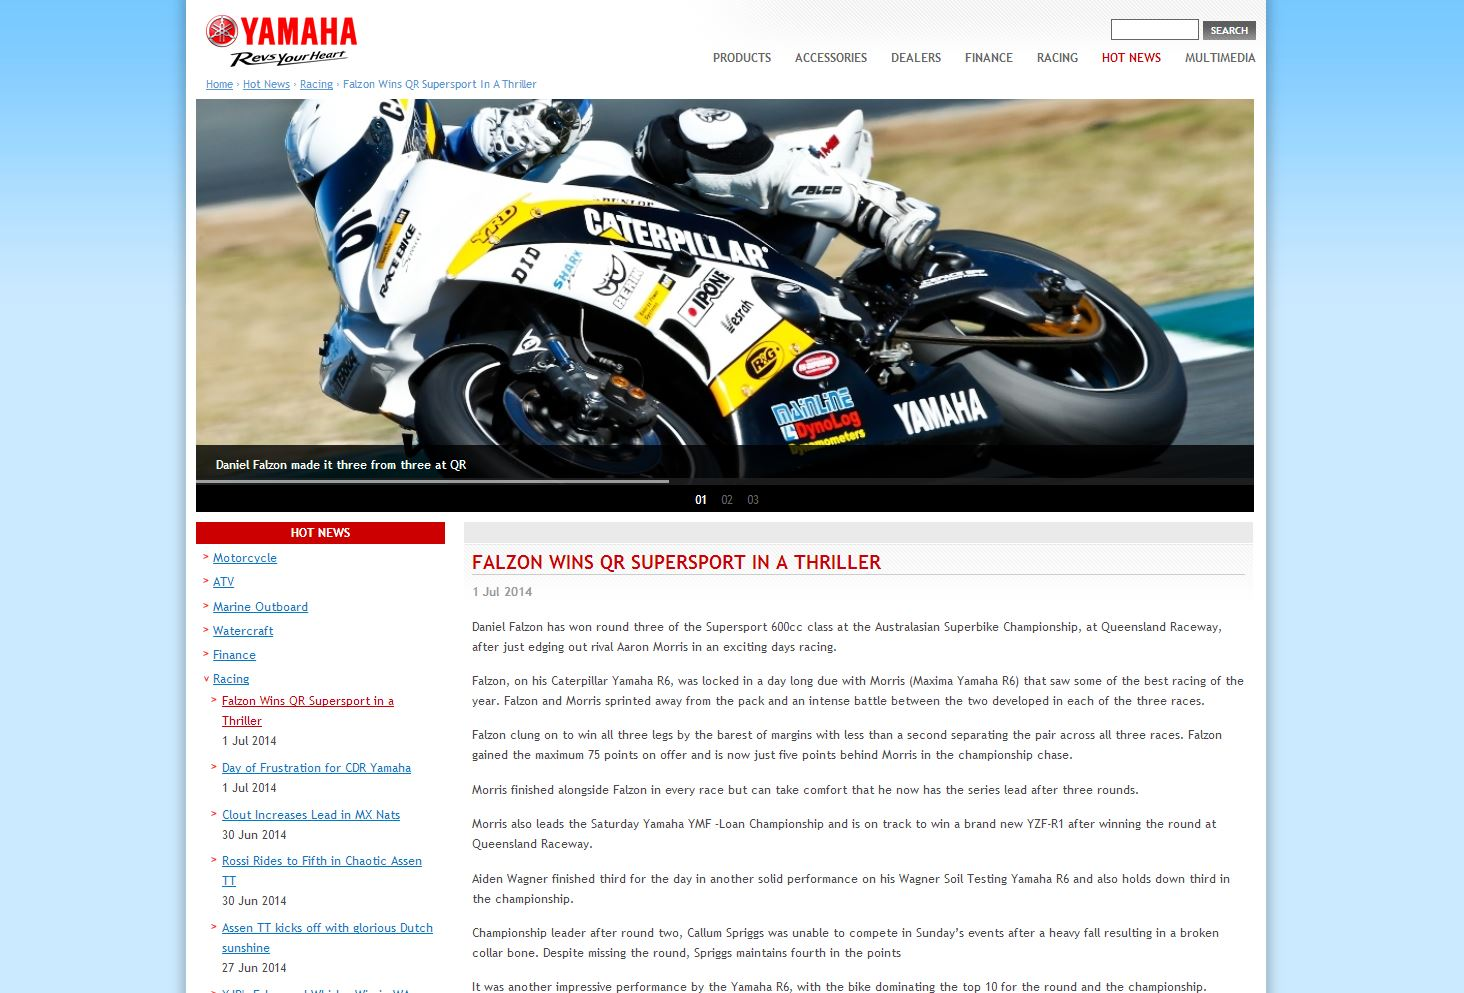 1/7/14 Yamaha Website